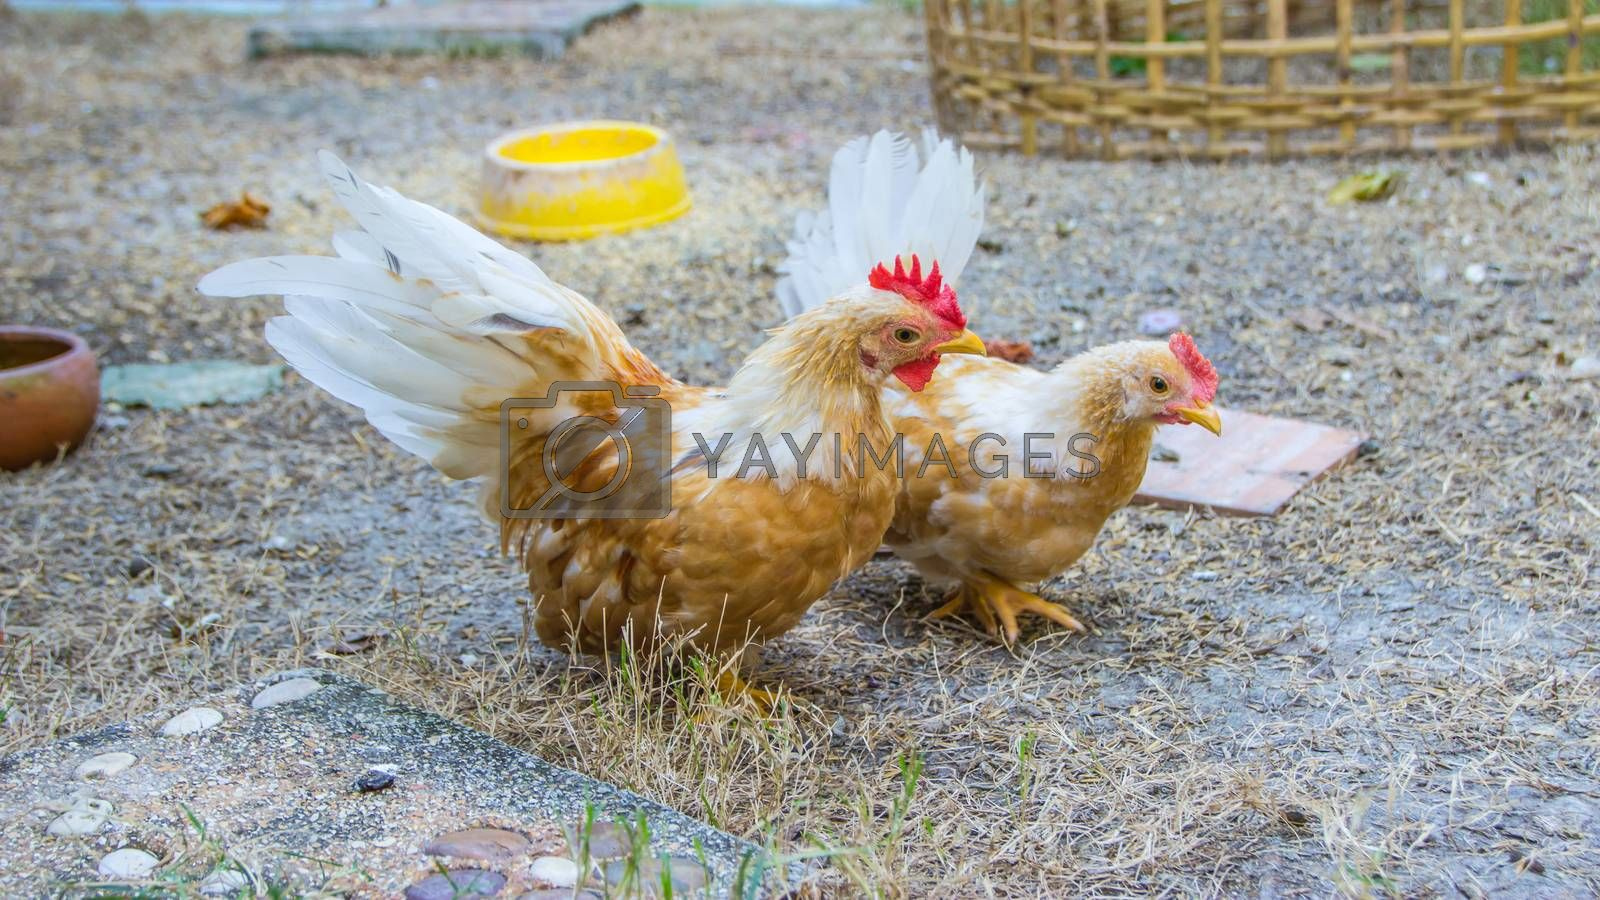 Colorful Rooster. Cock with Brown feathers. Bantam